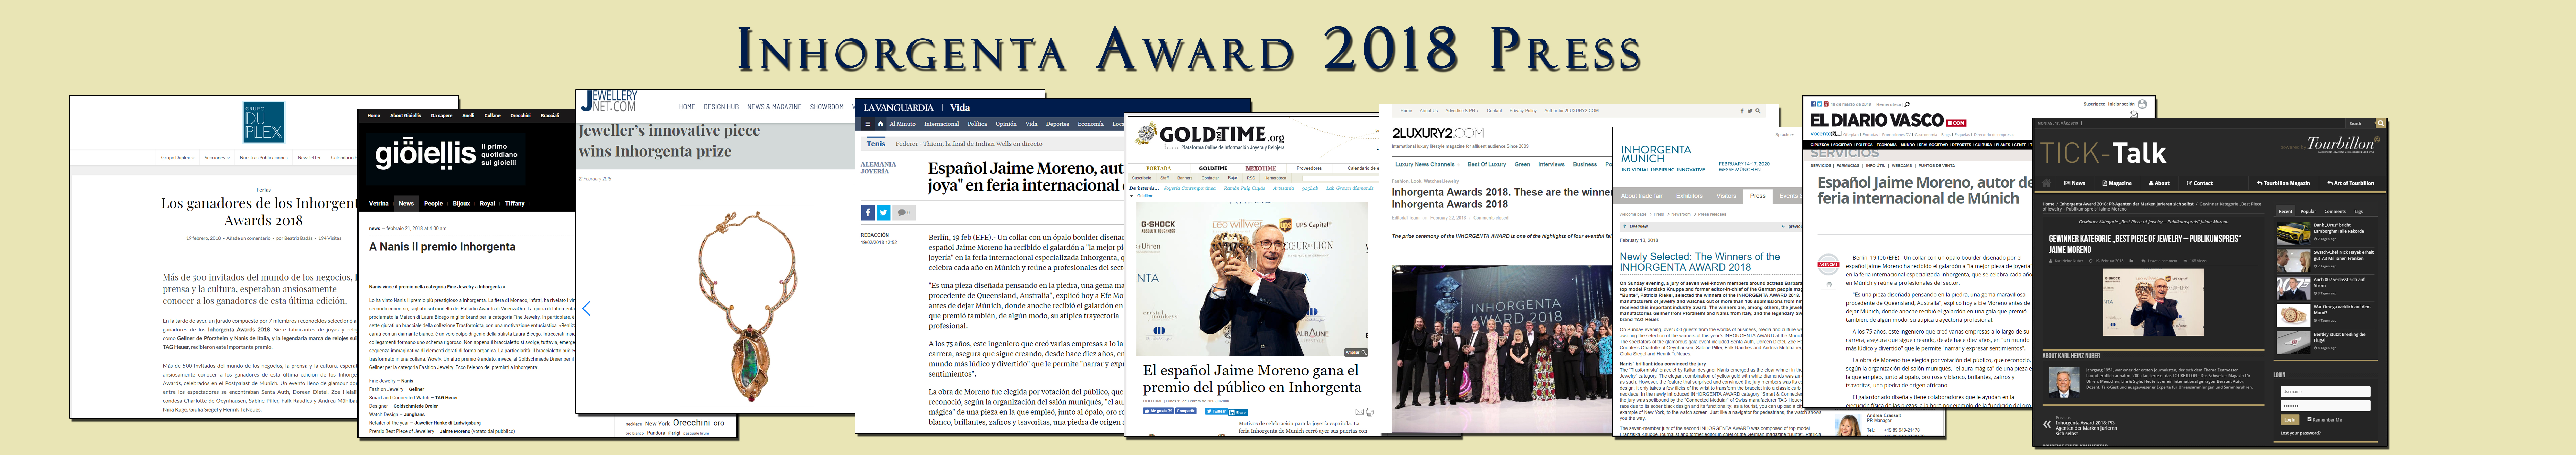 Jewelry Press Inhorgenta Award 2018 Jaime Moreno - Best Spanish Fine Jewelry Designer